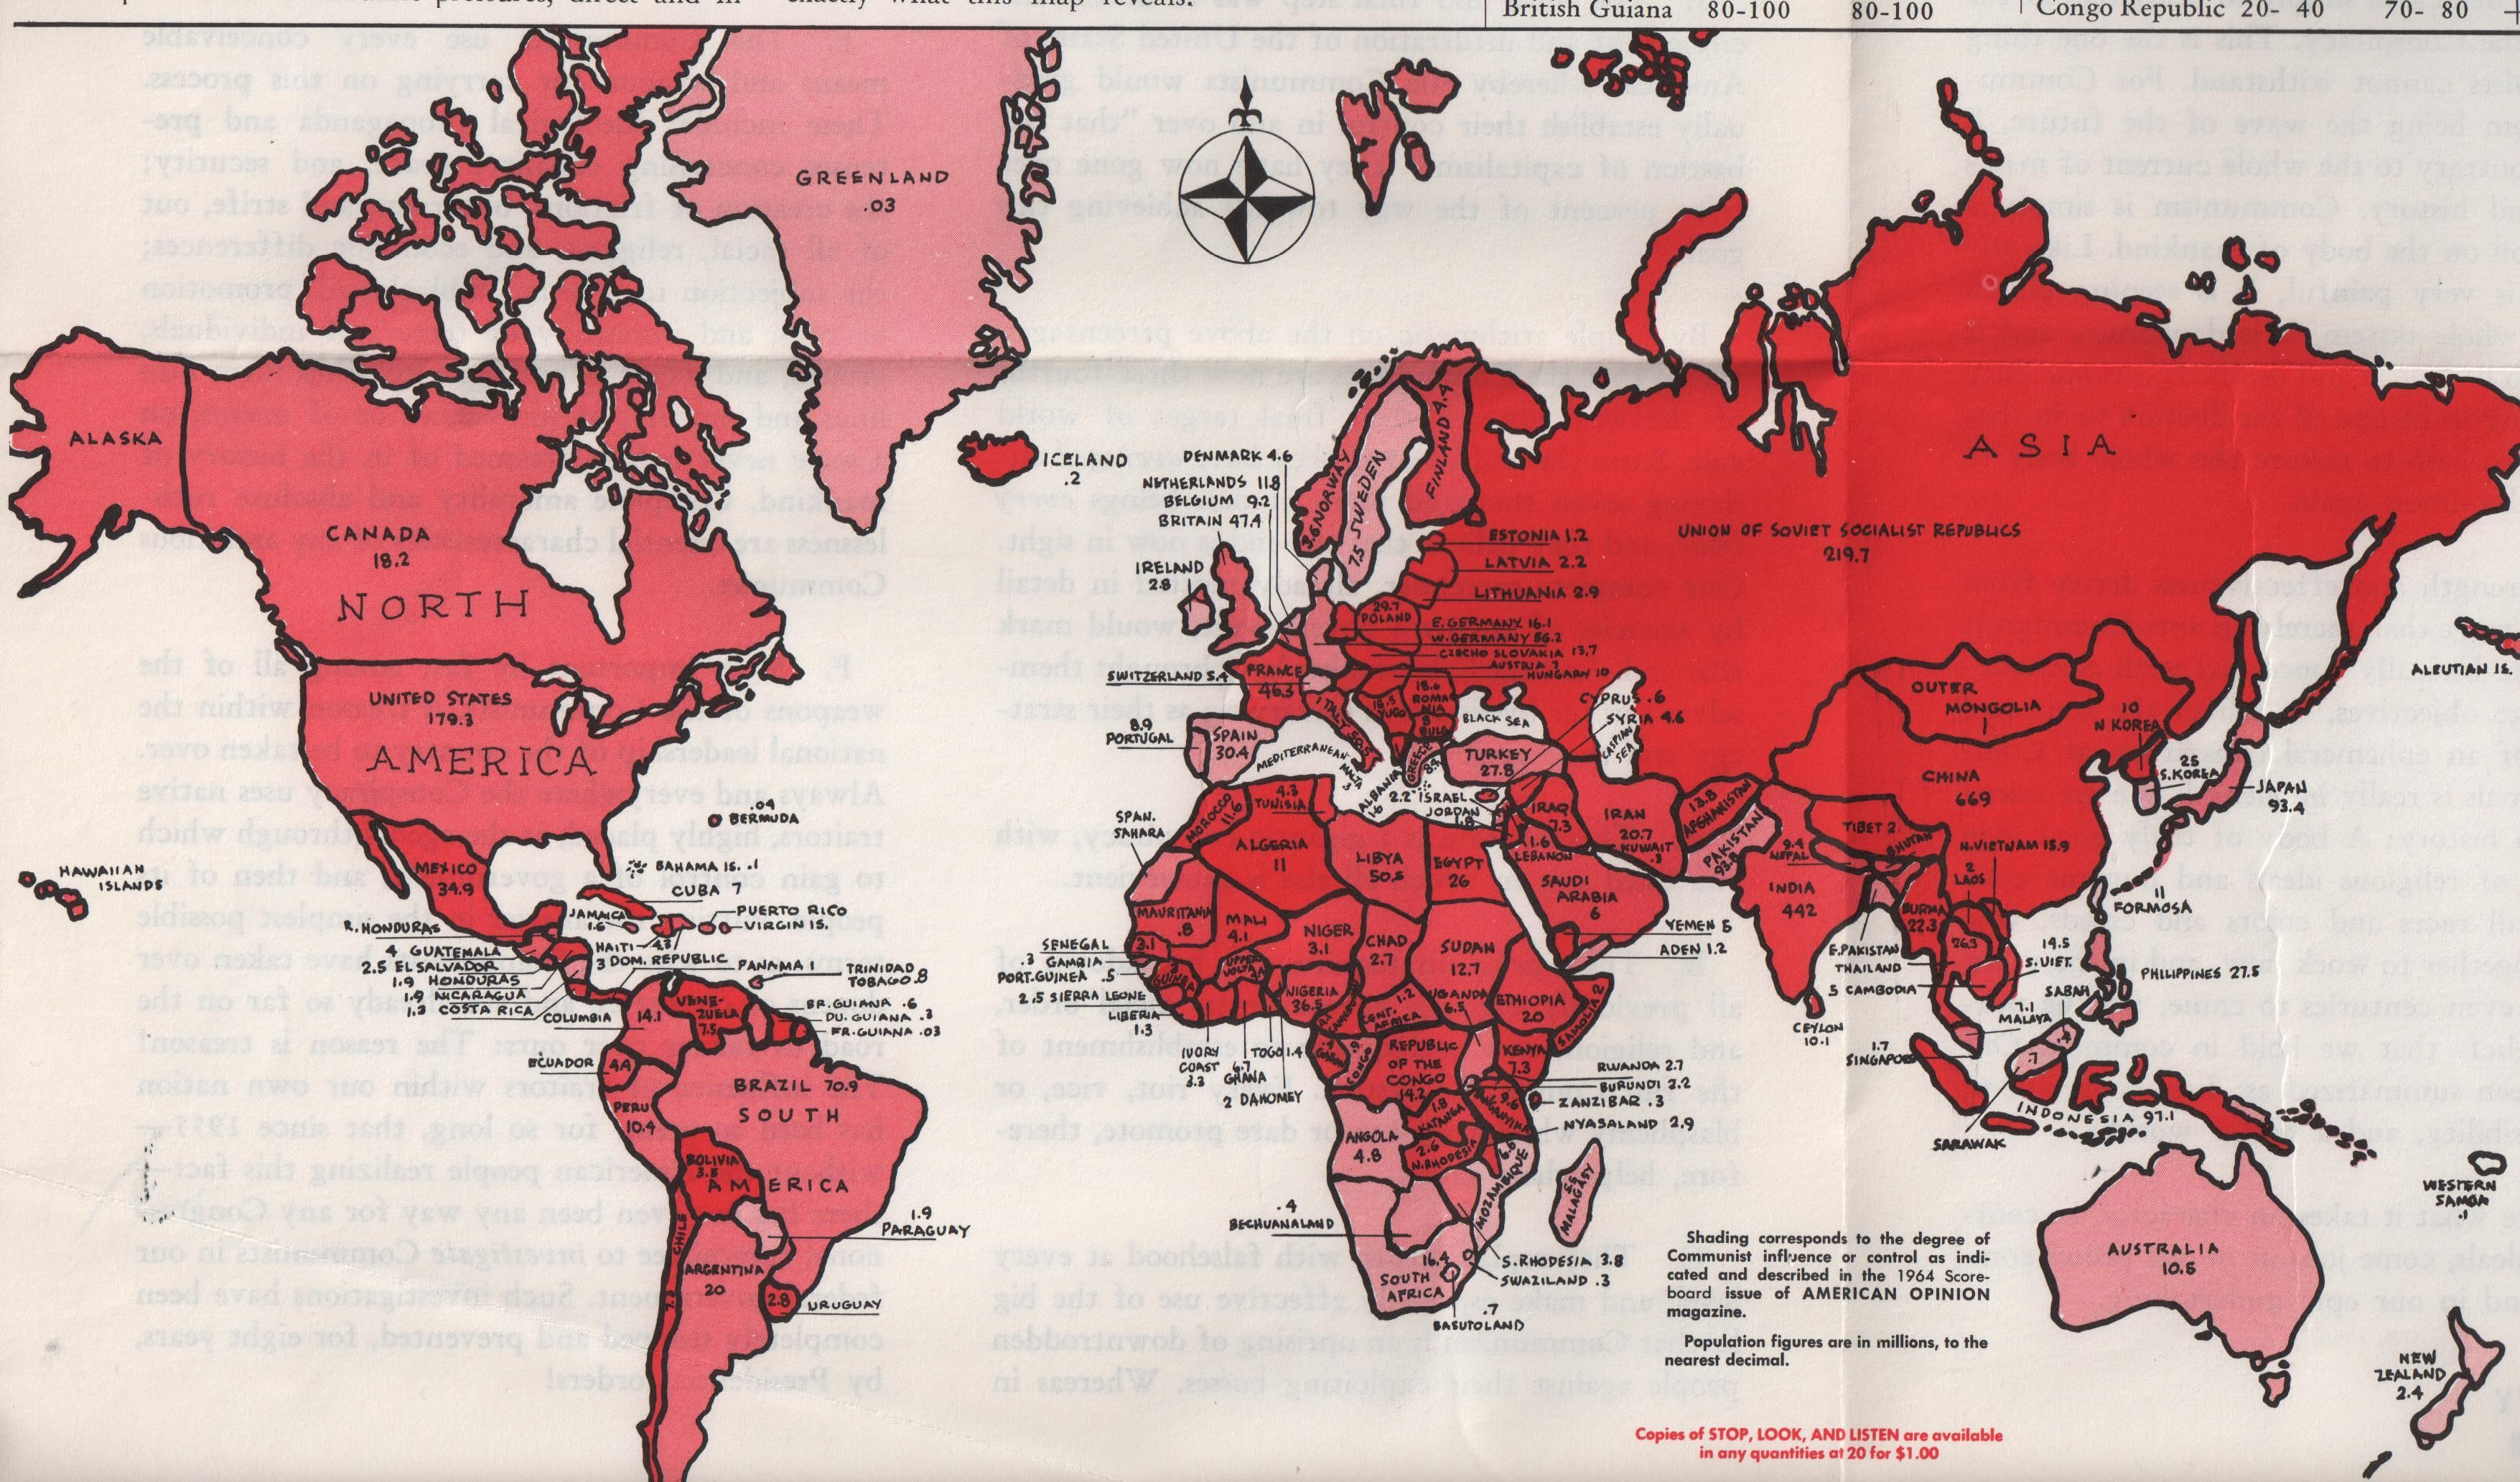 This is the map of the world